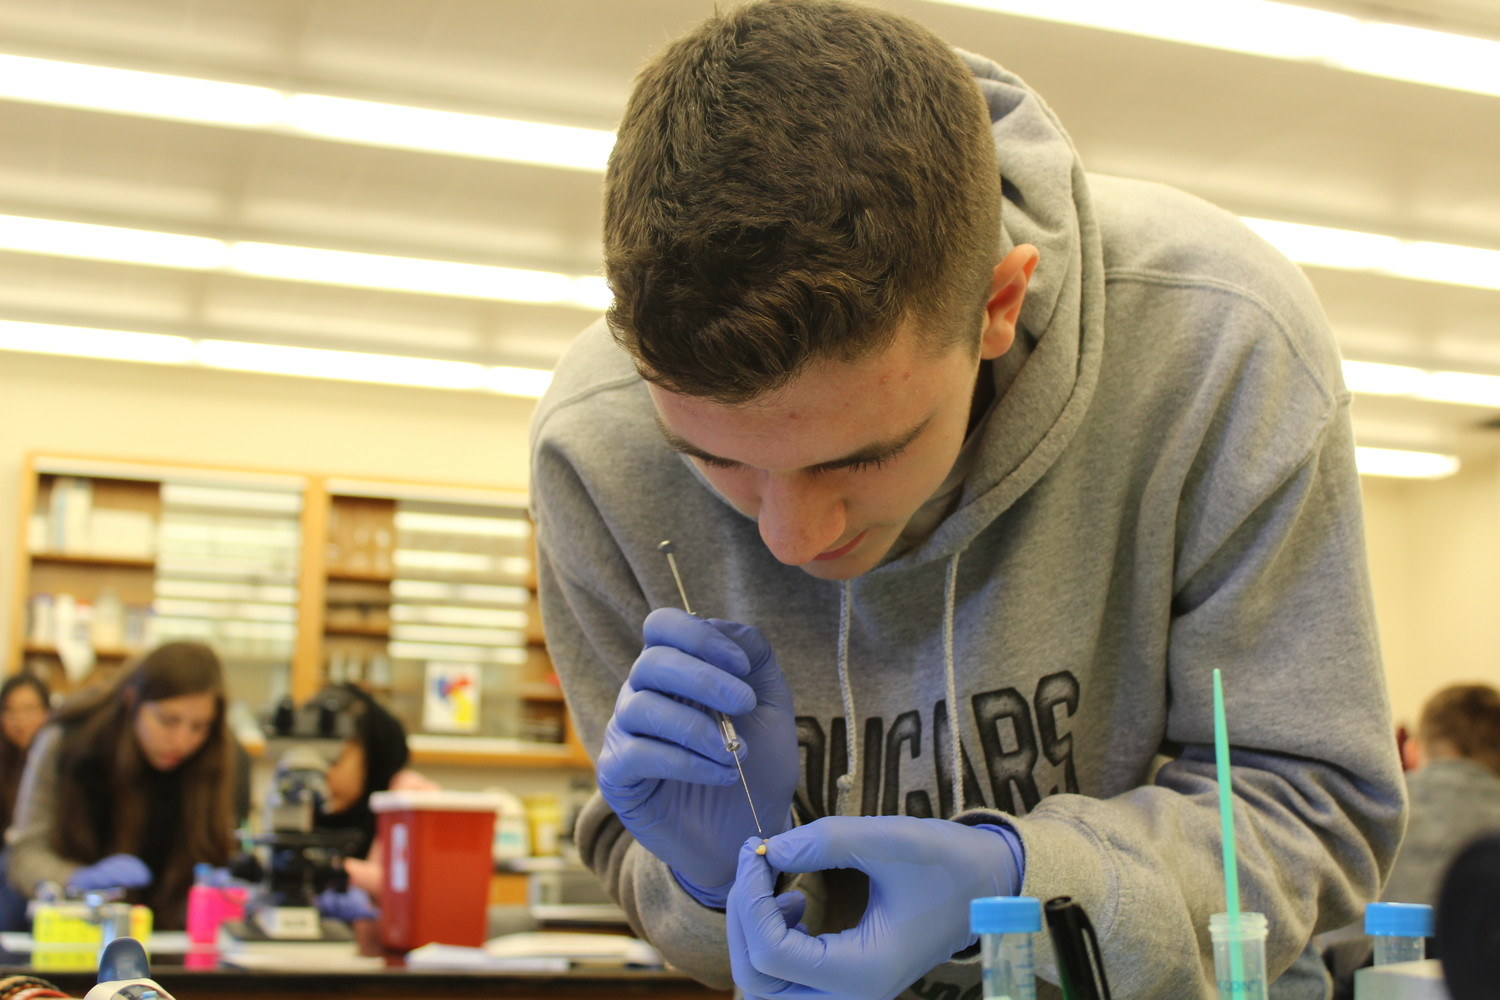 Liam Orr, a sophomore at Kennedy High School, took a crash course in clinical microbiology during the Bellmore-Merrick Central High School District's first Advanced Research Day at LIU Post. Liam injected a bacterium that causes meningitis into a wax worm.